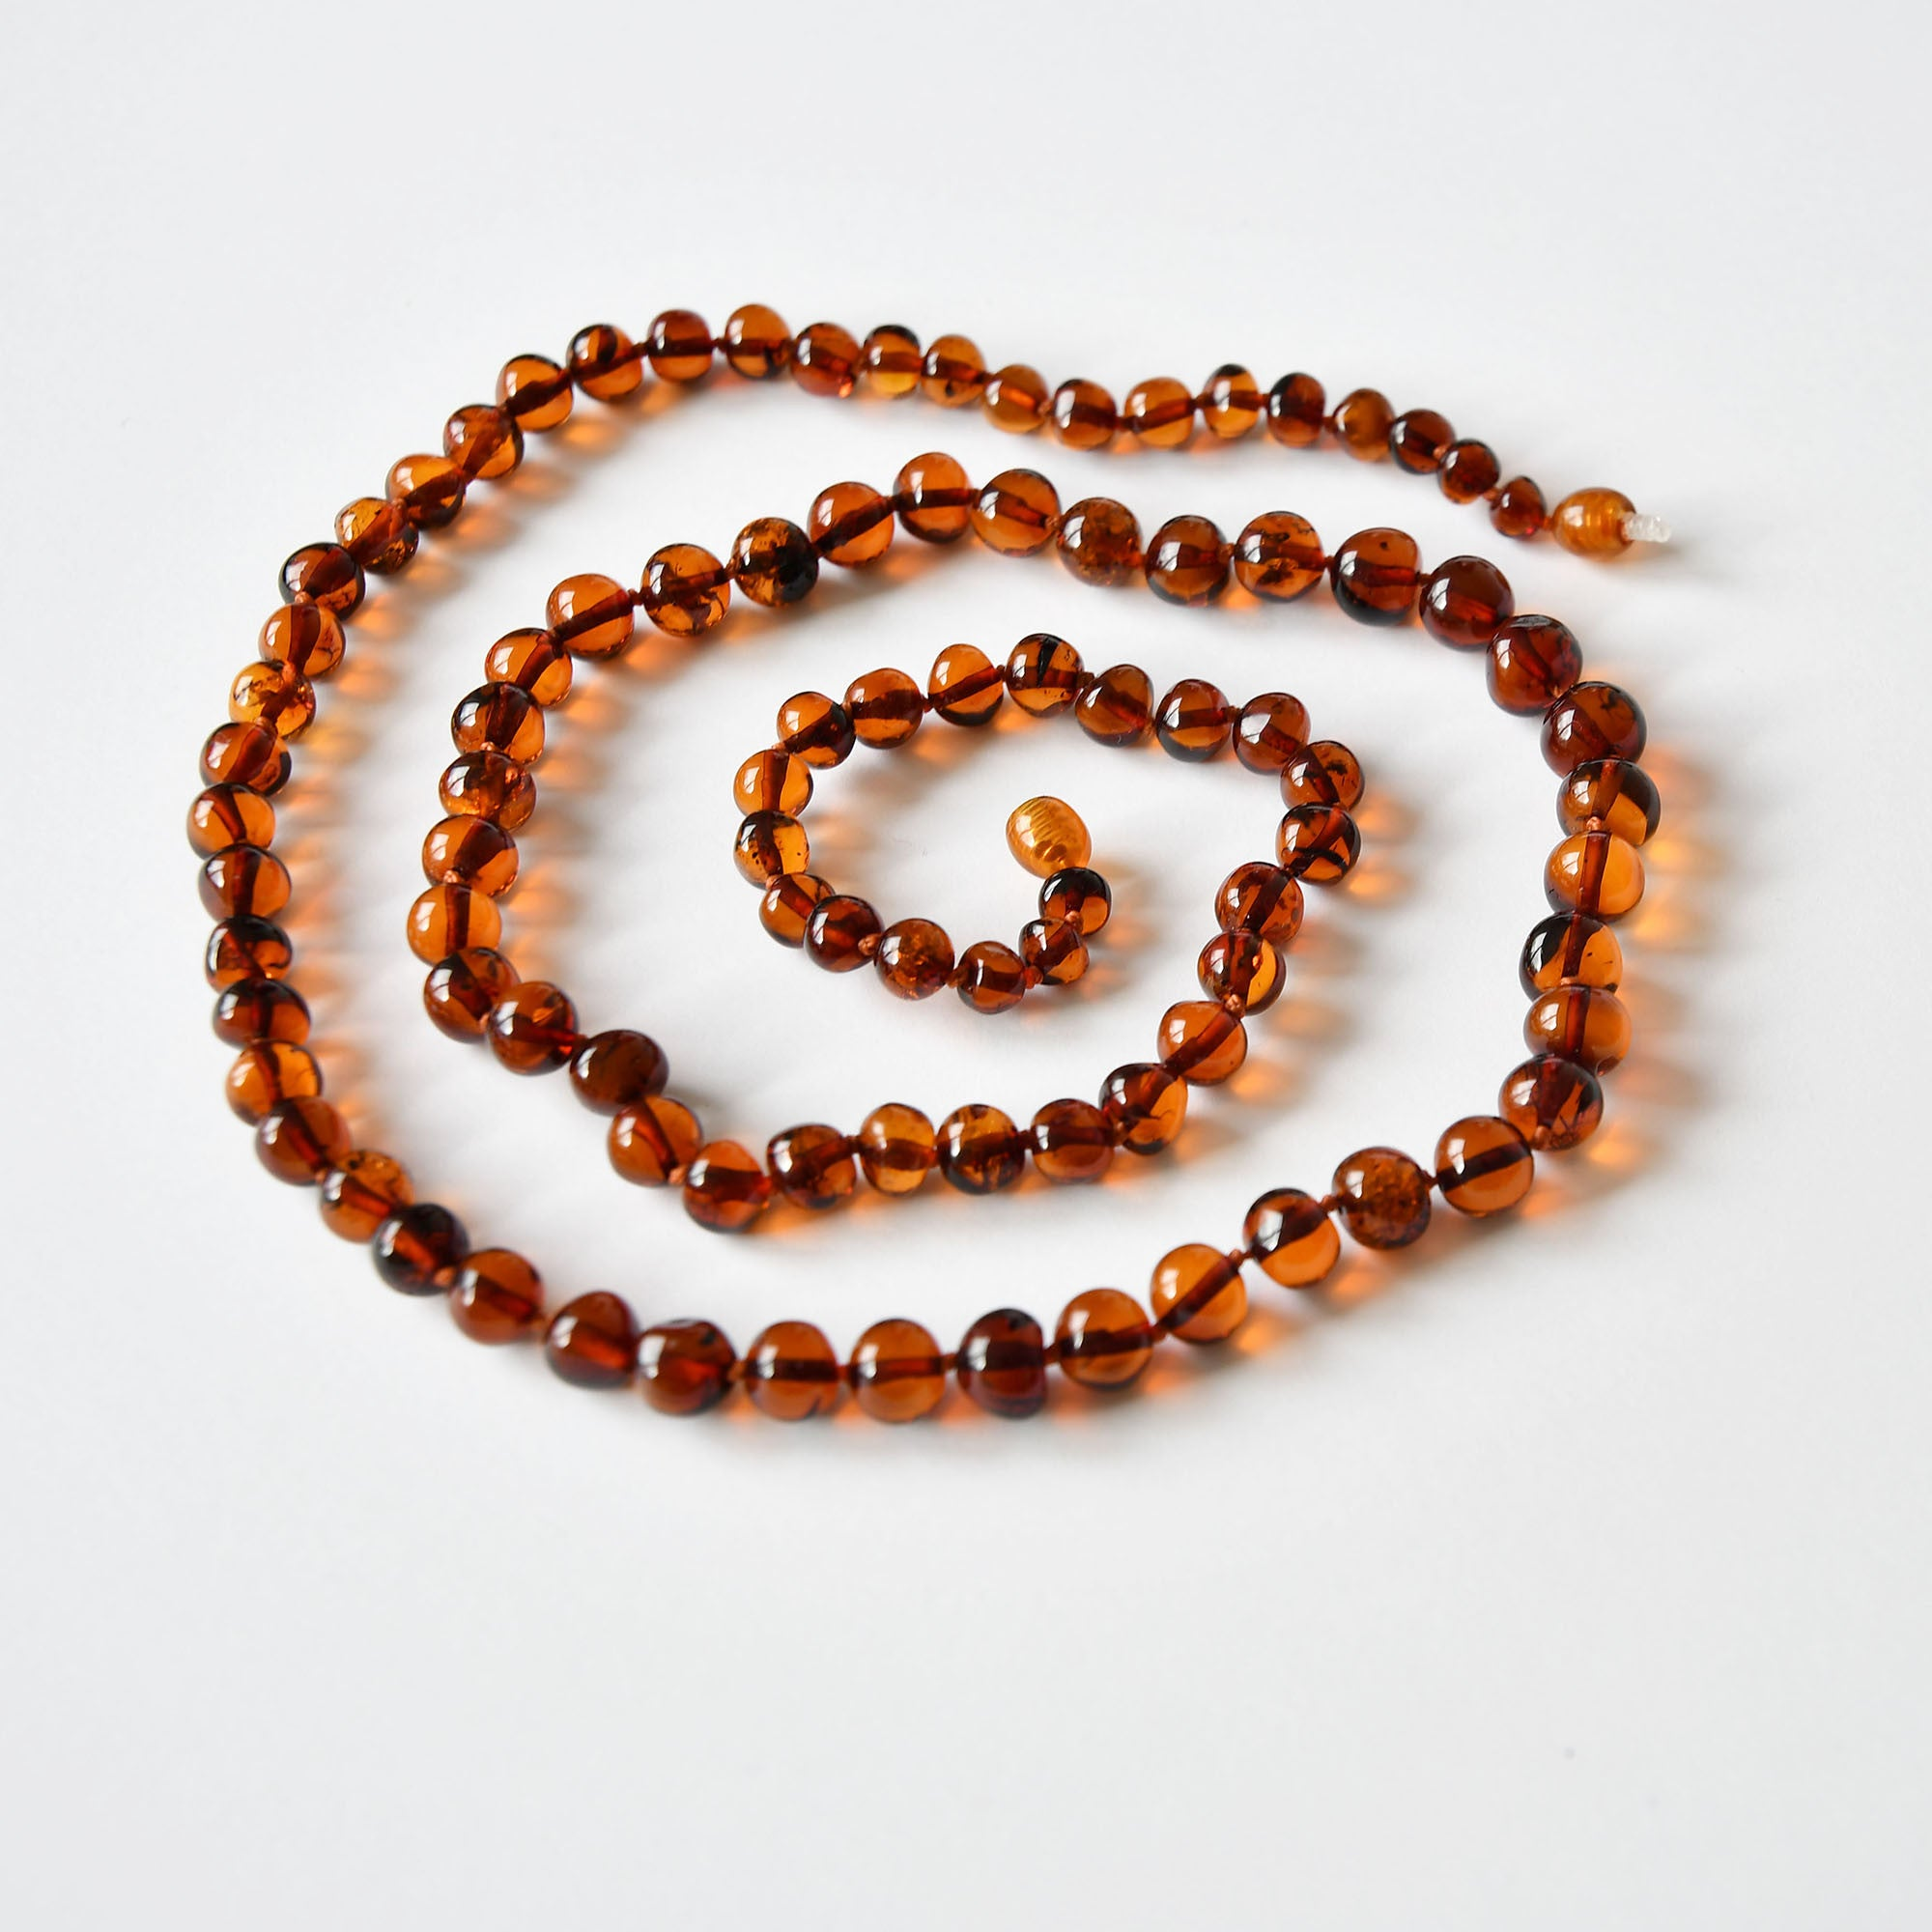 Amber beads necklace of cherry color